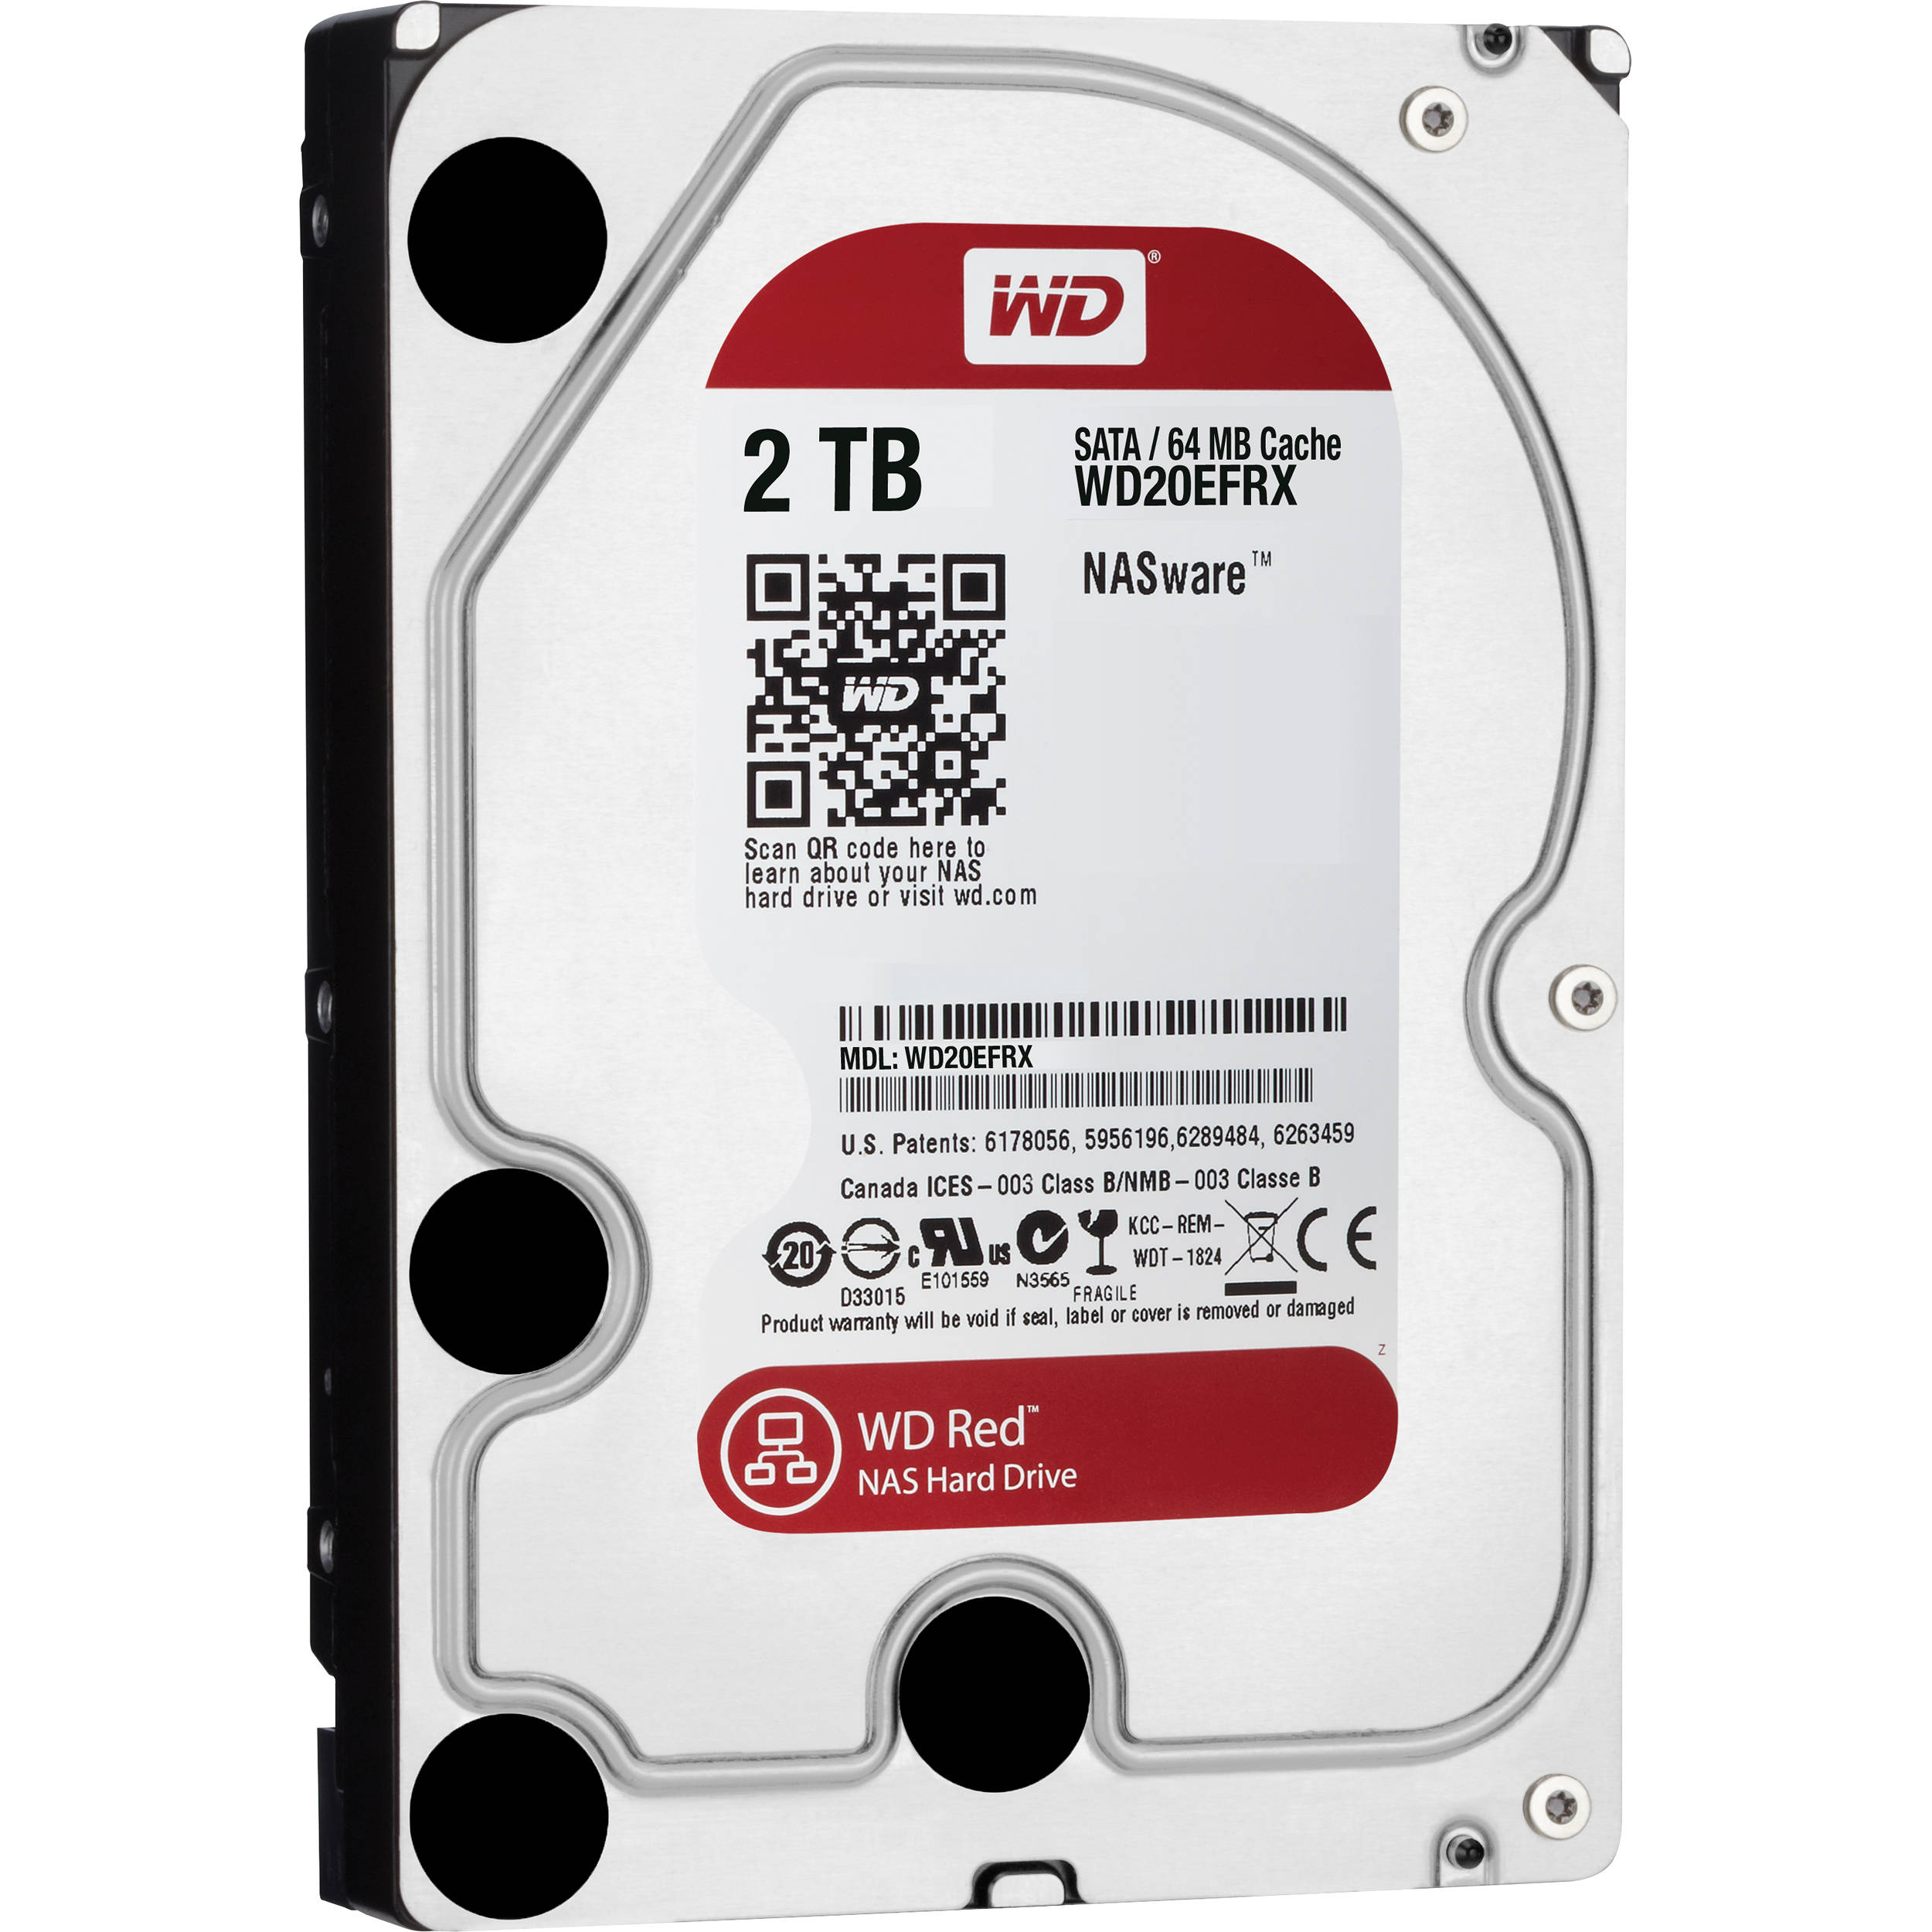 wd 2tb red 5400 rpm sata iii 3 5 internal nas hdd wd20efrx. Black Bedroom Furniture Sets. Home Design Ideas